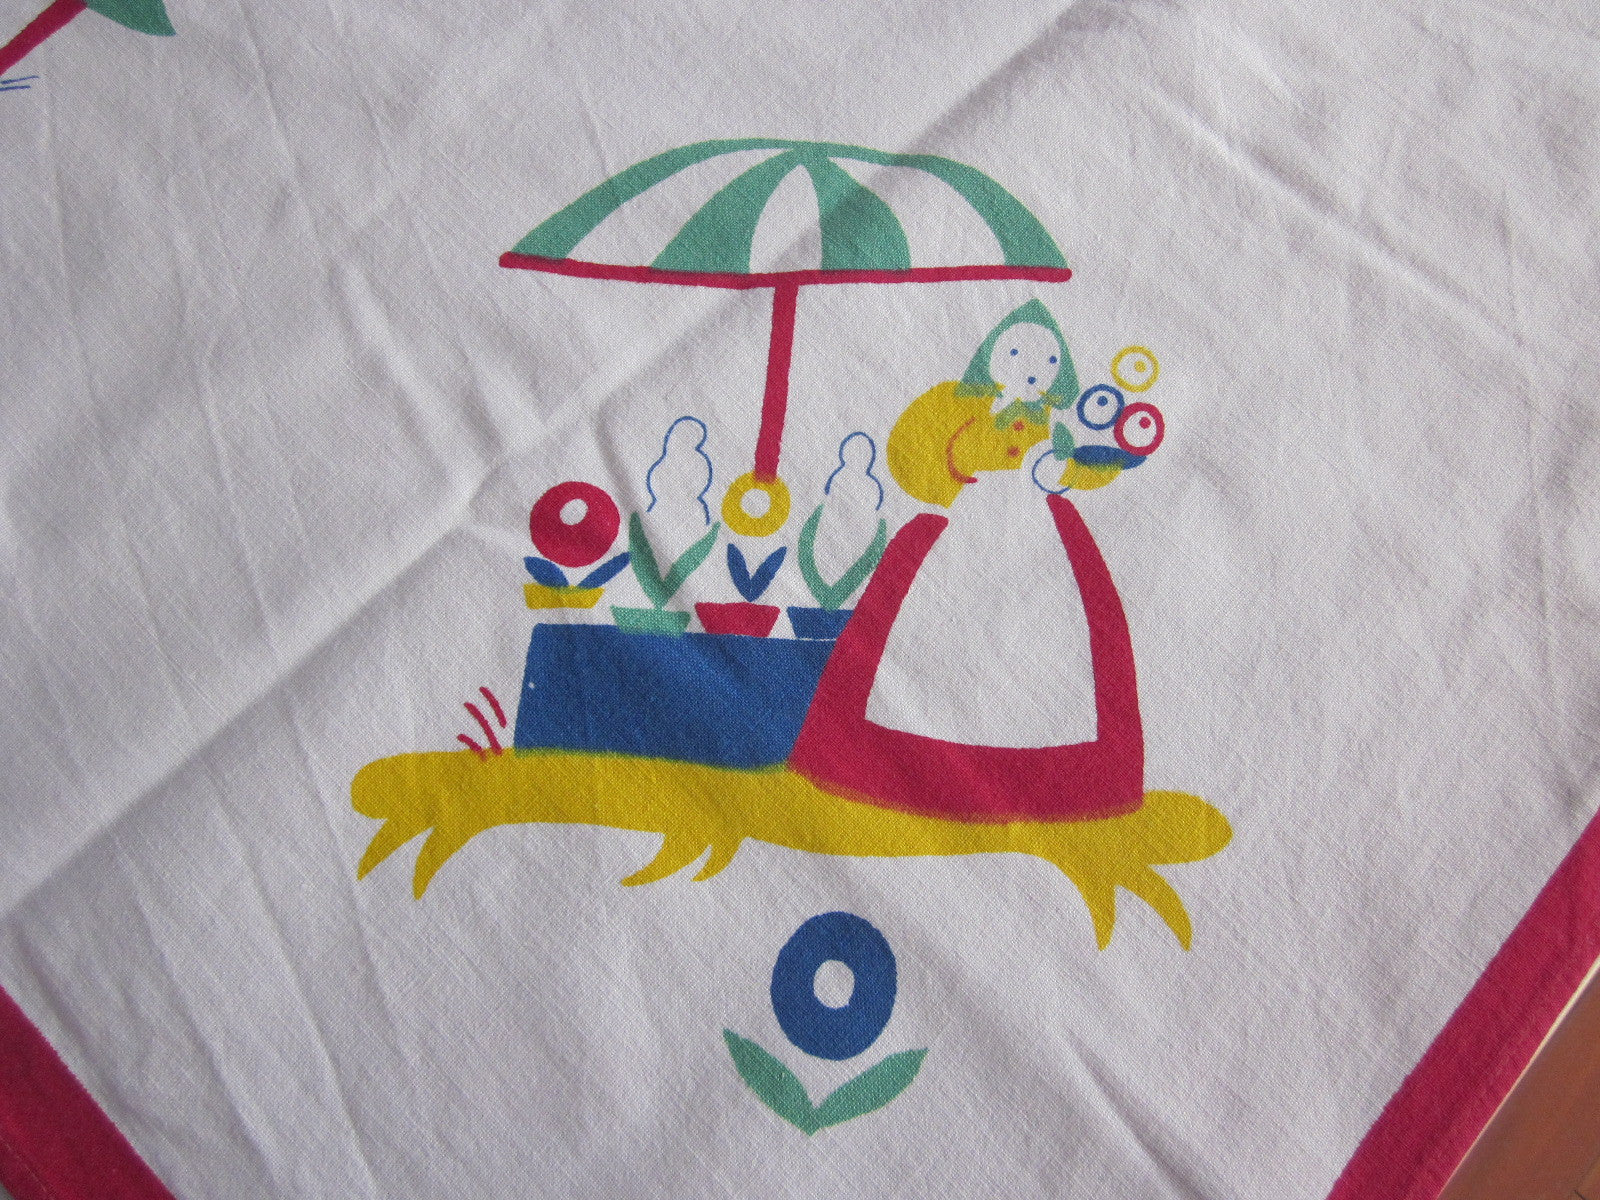 Dewan Primary Cartoon People Novelty Vintage Printed Tablecloth (51 X 46)